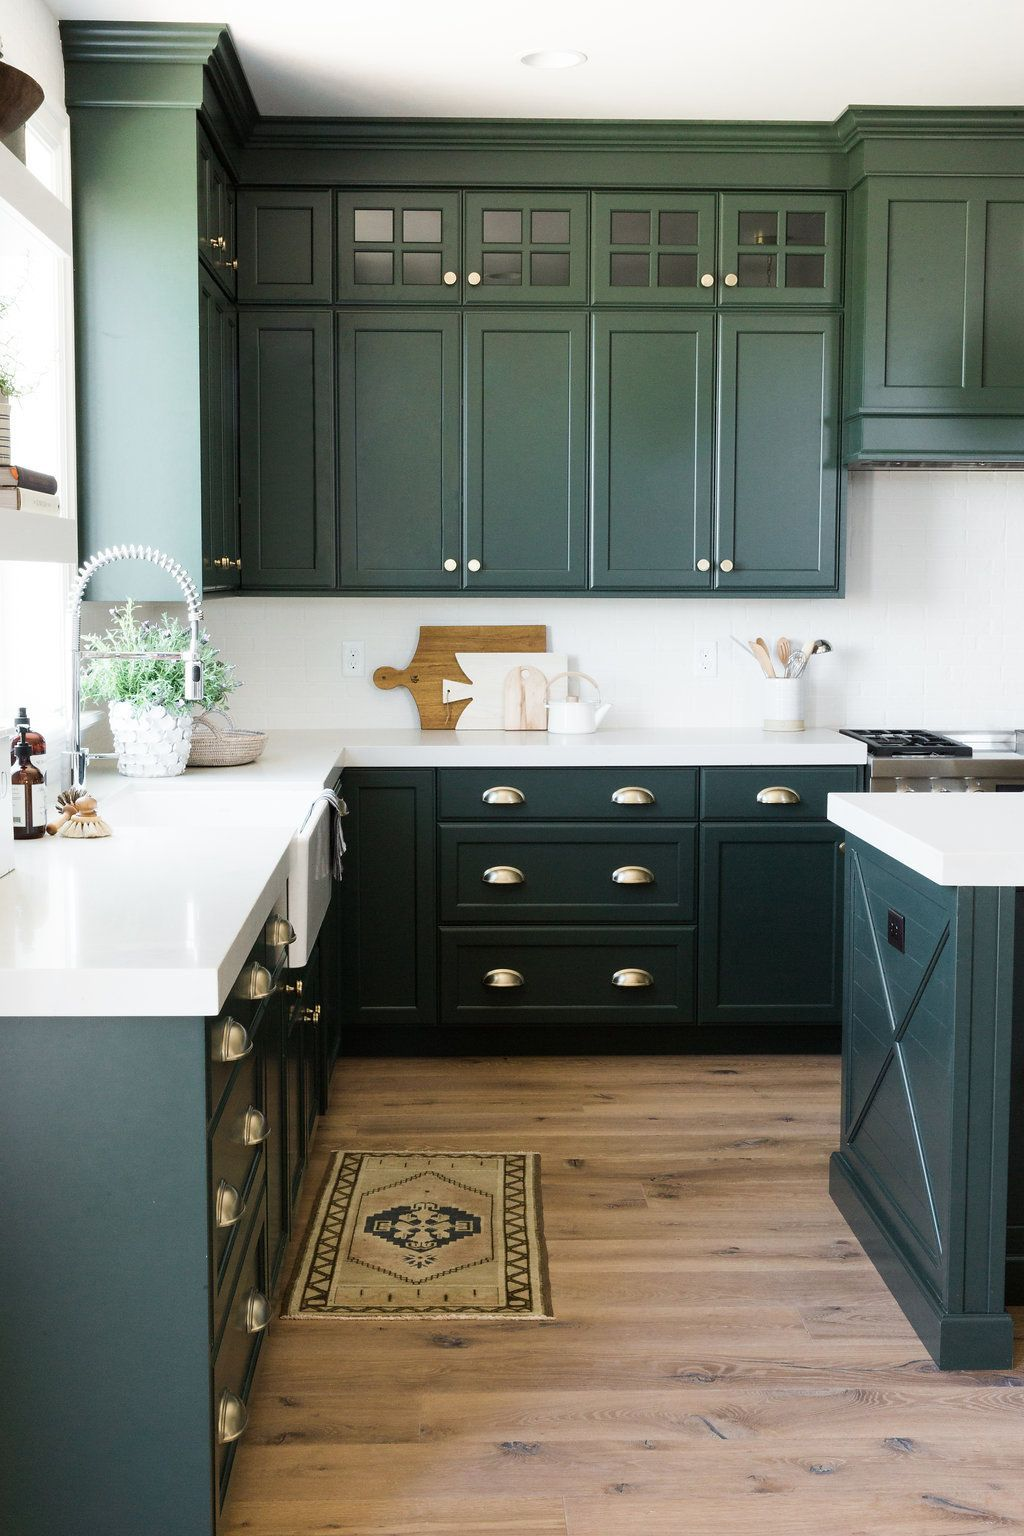 Parade Home Reveal Pt 1 Kitchen Cabinet Inspiration Green Kitchen Cabinets Dark Green Kitchen